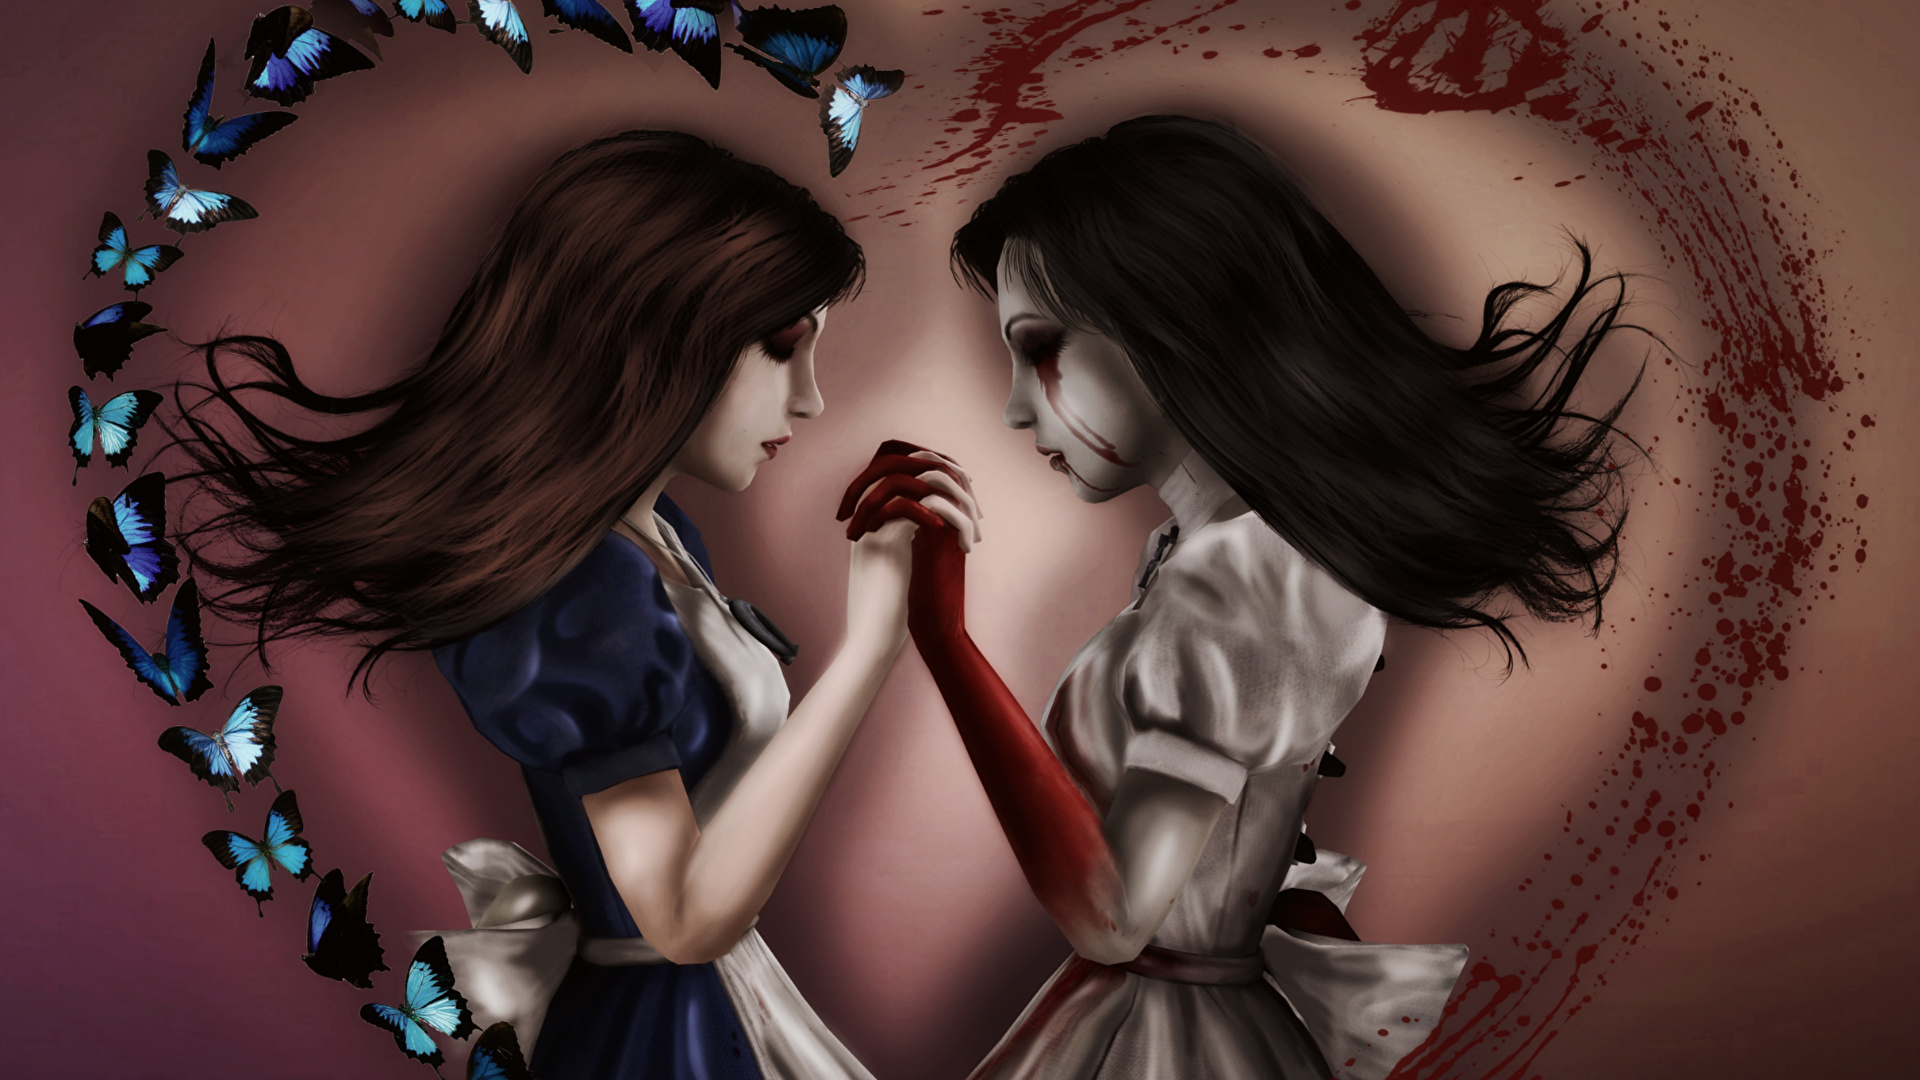 Image Alice Blood Madness Returns 2 Hair Girls Vdeo Game 1920x1080